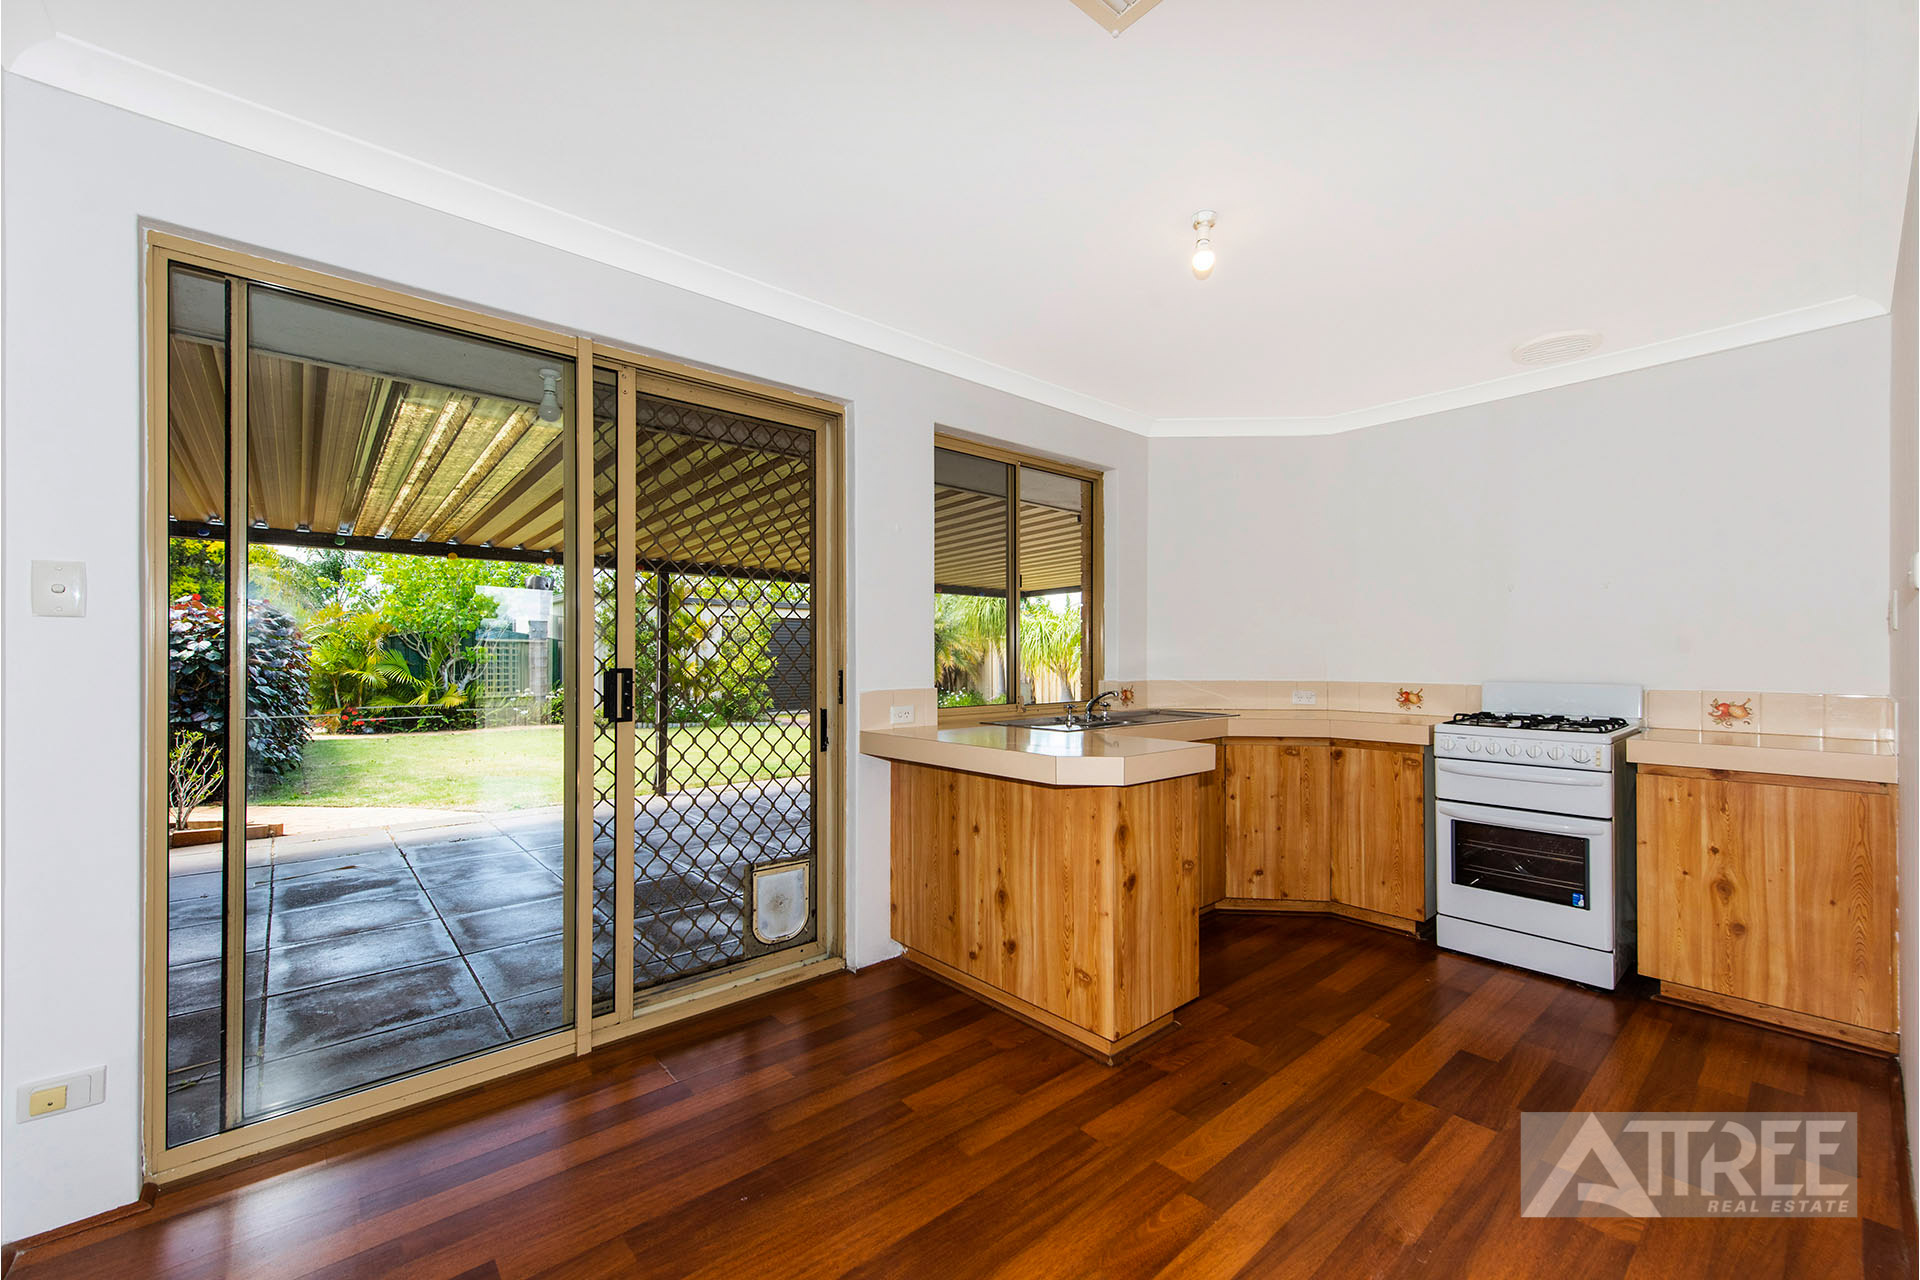 Property for sale in MADDINGTON, 130 Alcock Street : Attree Real Estate